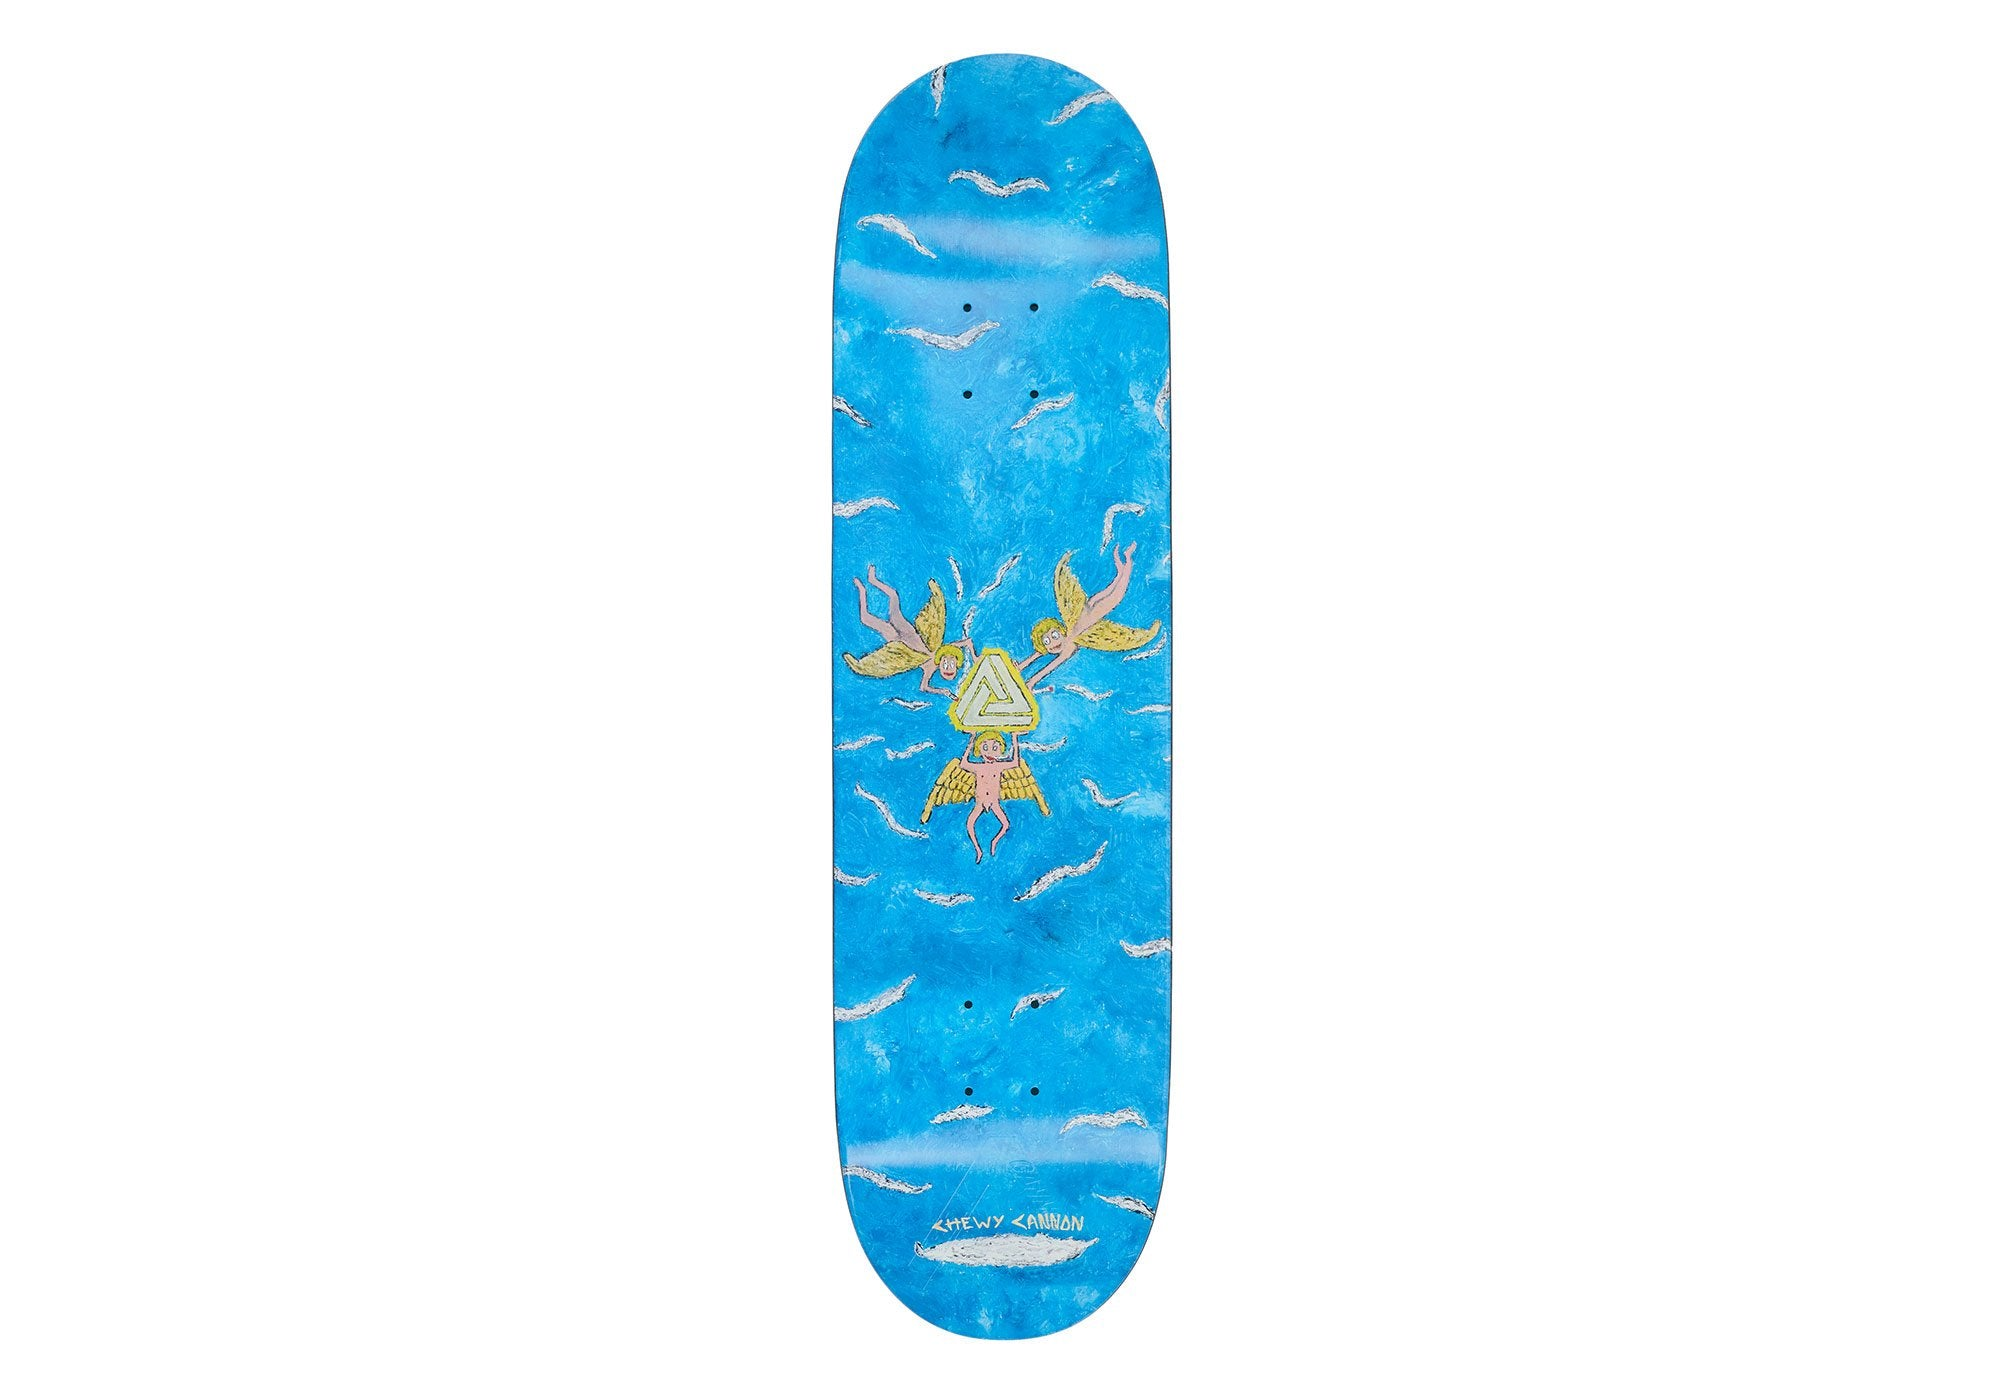 Palace - Chewy Pro S24 deck - 8.375""